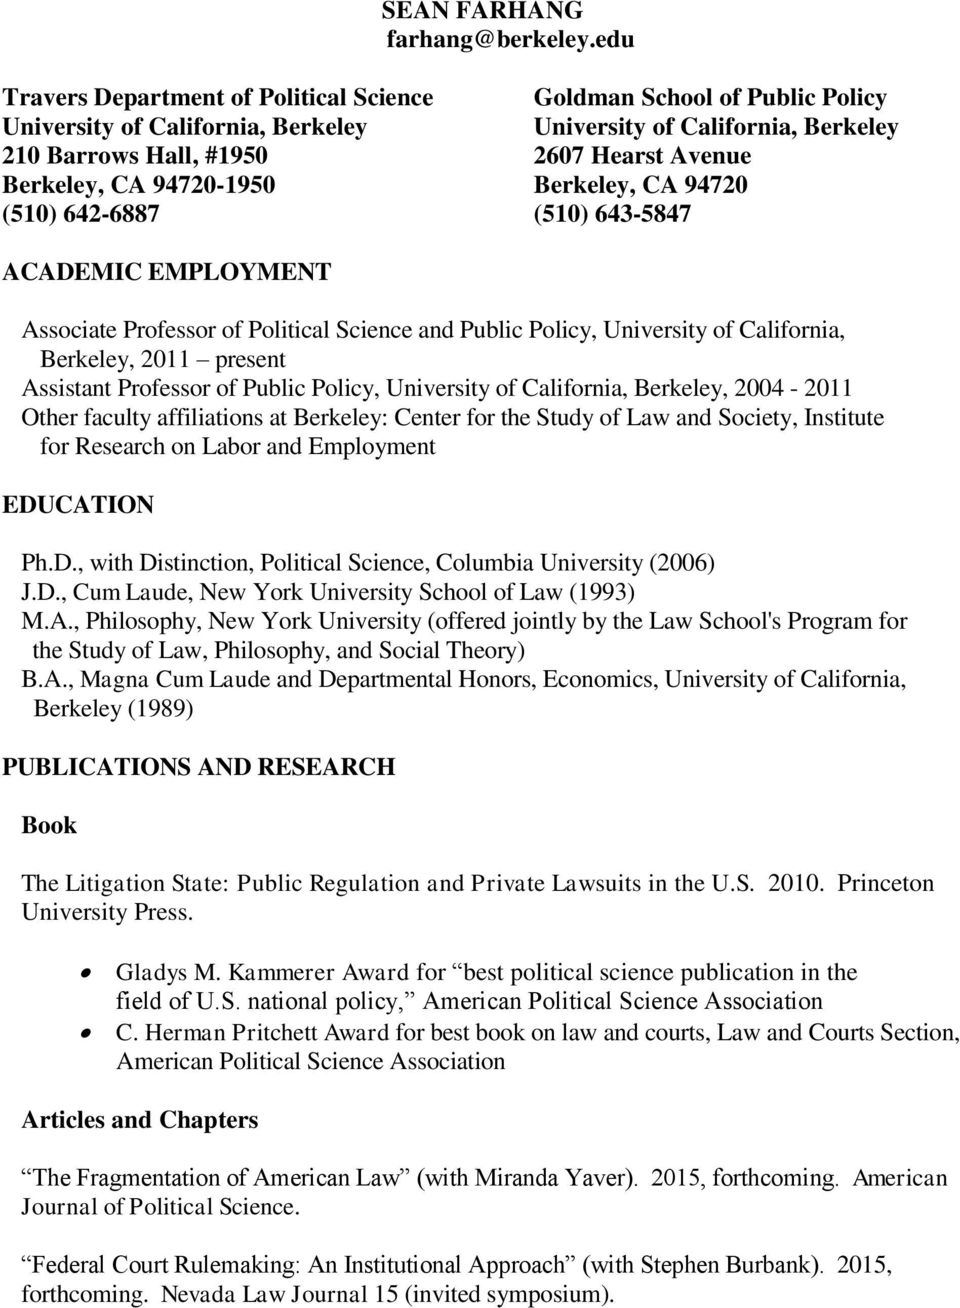 CA 94720-1950 Berkeley, CA 94720 (510) 642-6887 (510) 643-5847 ACADEMIC EMPLOYMENT Associate Professor of Political Science and Public Policy, University of California, Berkeley, 2011 present